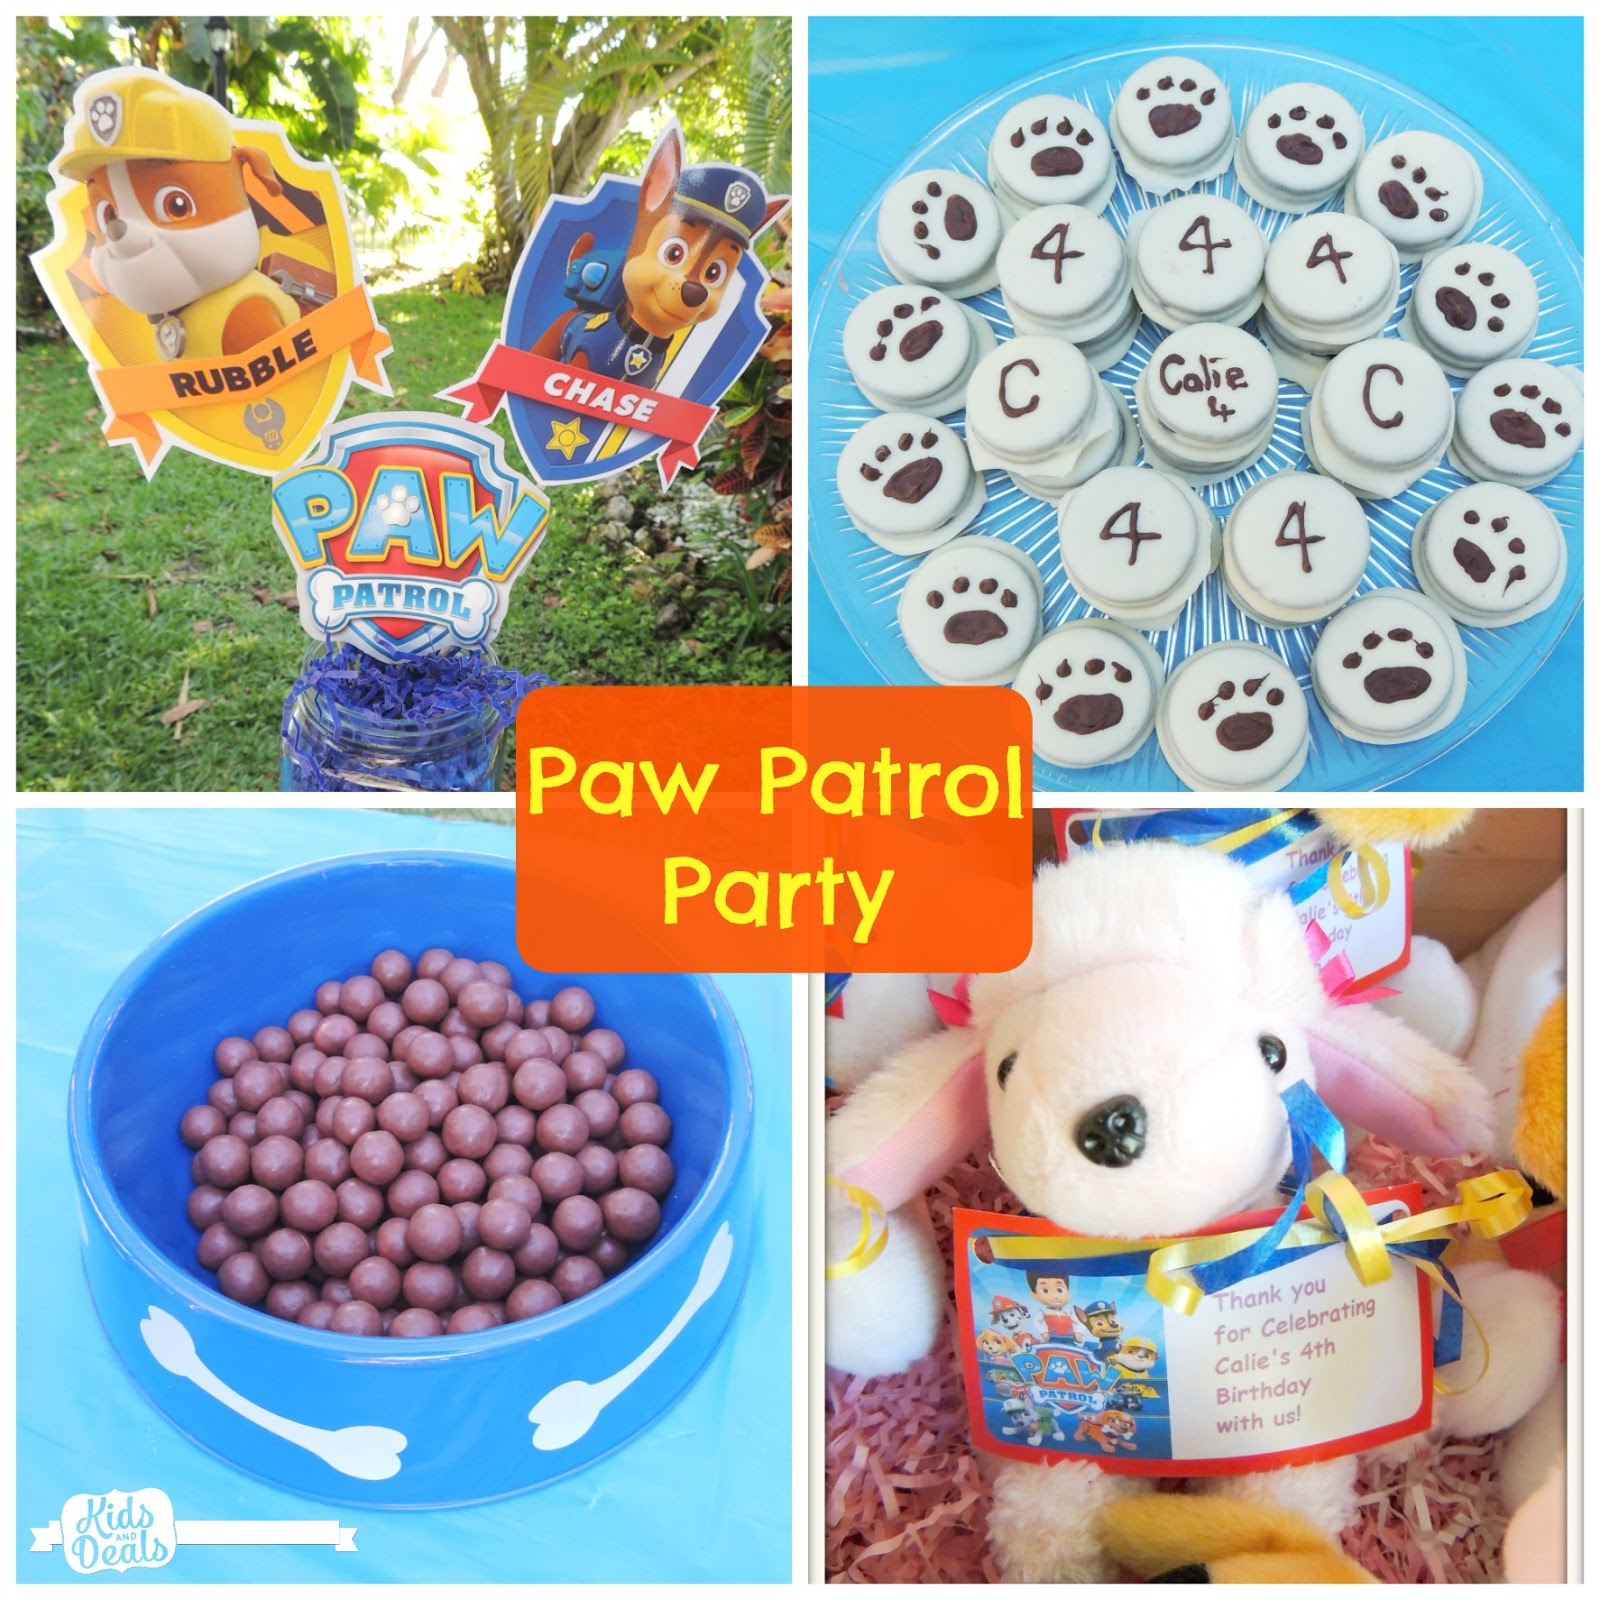 Kids And Deals Host A Paw Patrol Birthday Party. Tax Plan Graduate Students. Graduation Gowns For Sale. Accounts Payable Excel Template. Sample Resume For Highschool Graduate. Concert Poster Design. Us News Graduate School Rankings. Registration Forms Template Free. Tri Fold Graduation Announcements